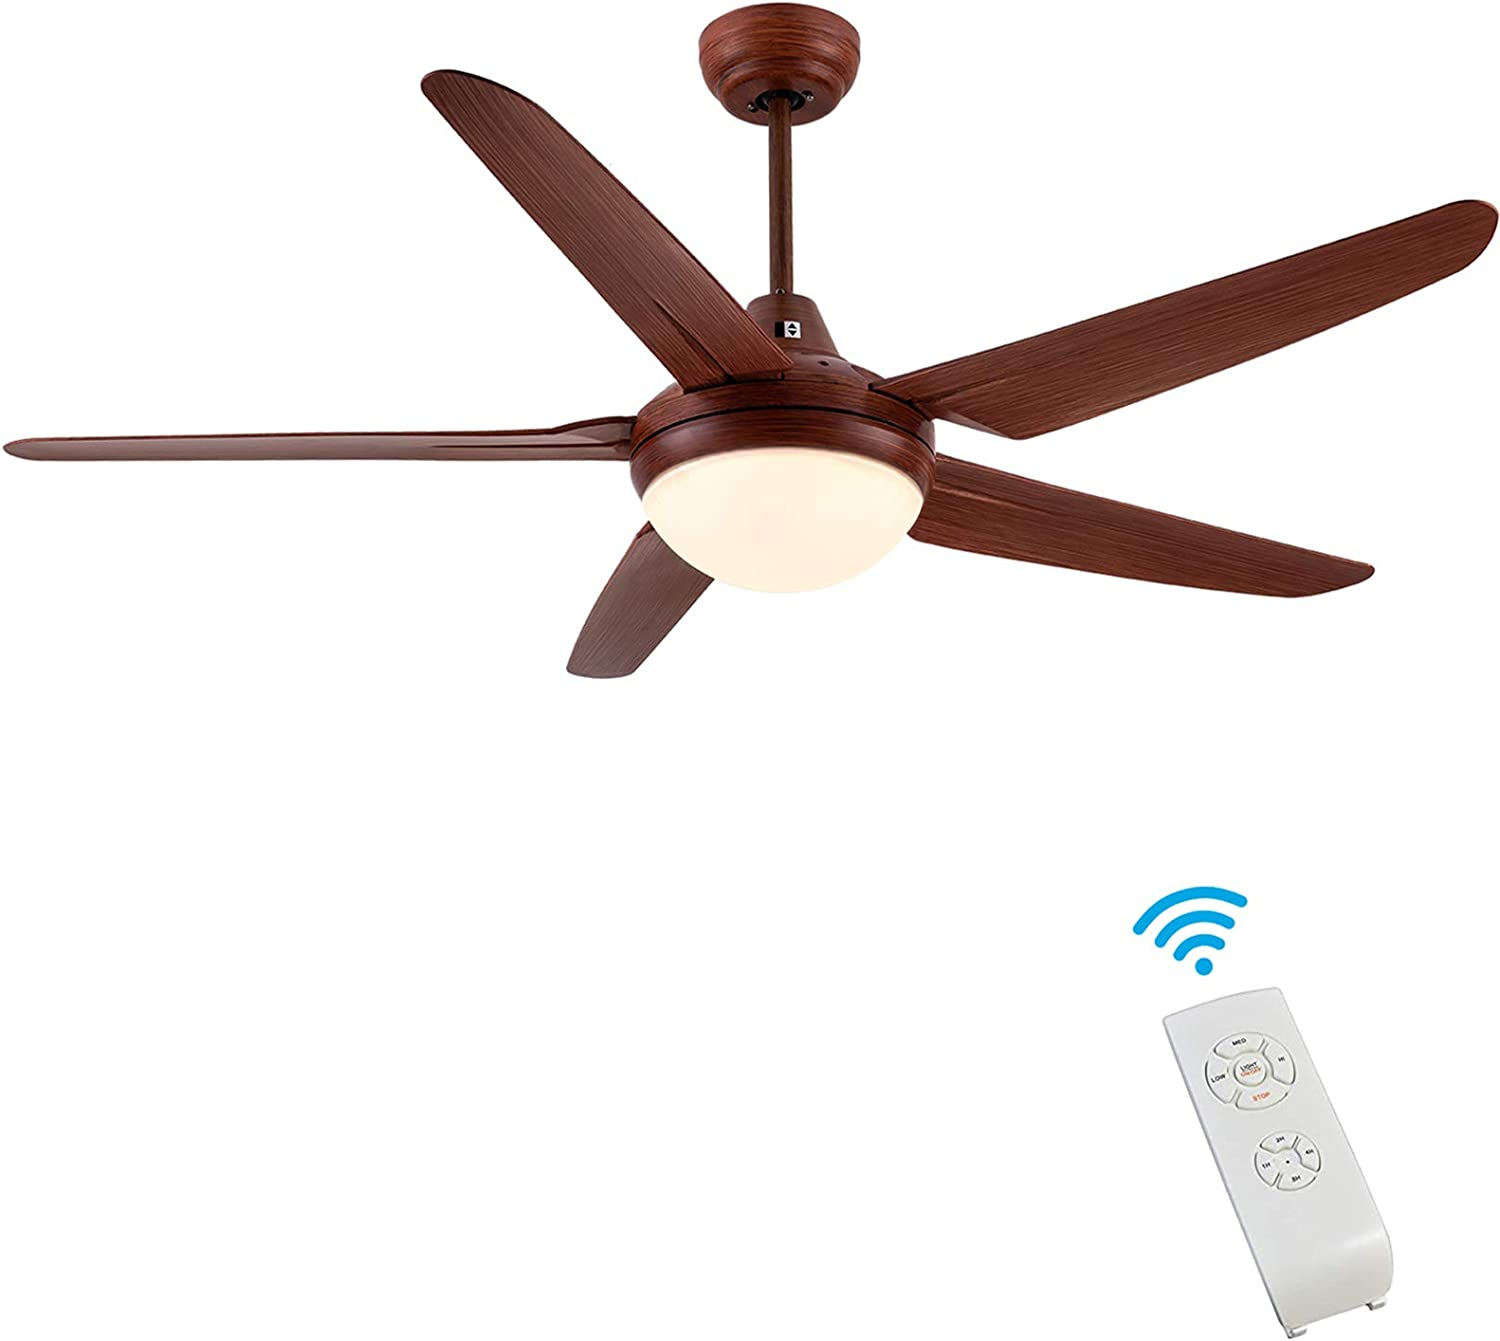 Ceiling Fan with Light, CJOY 53 Inch Modern Ceiling Fan with 5 Reversible Blades, 3000K, Remote Controls, Oil-Rubbed Bronze, for Indoor/Outdoor